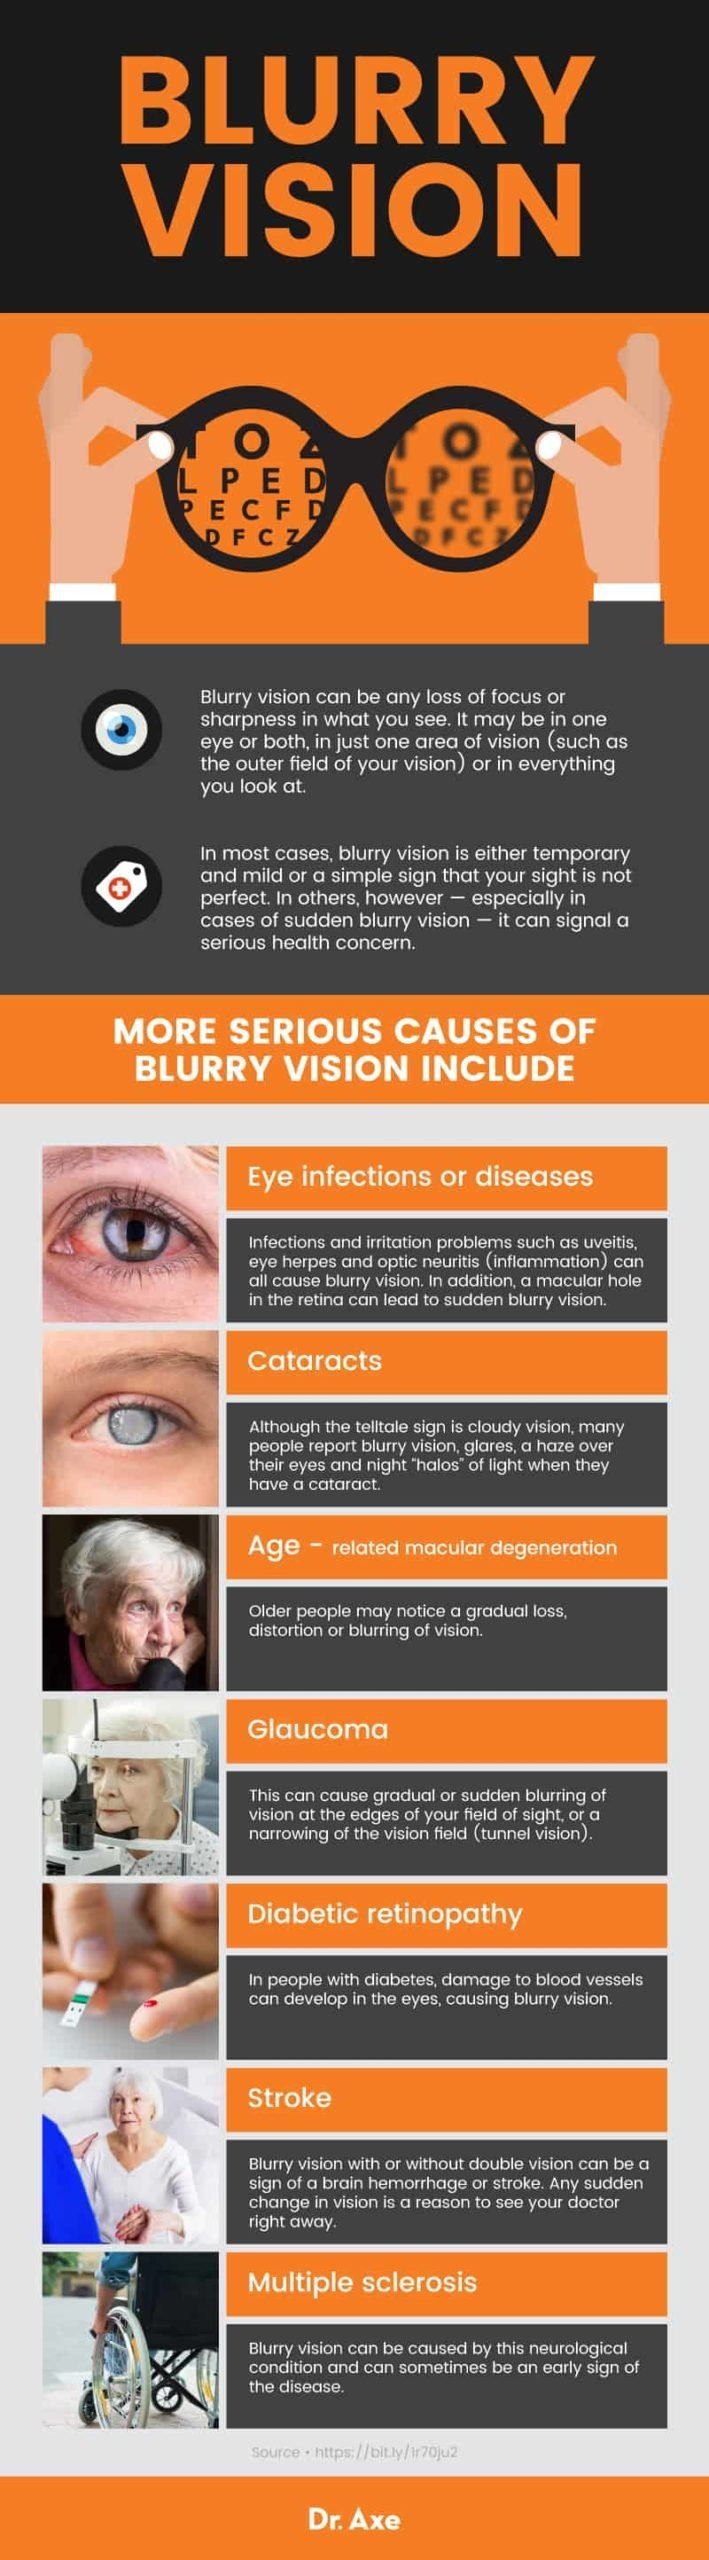 The Cause Of The Right Eye Is Suddenly Blurred With Brown Spots On Sight?